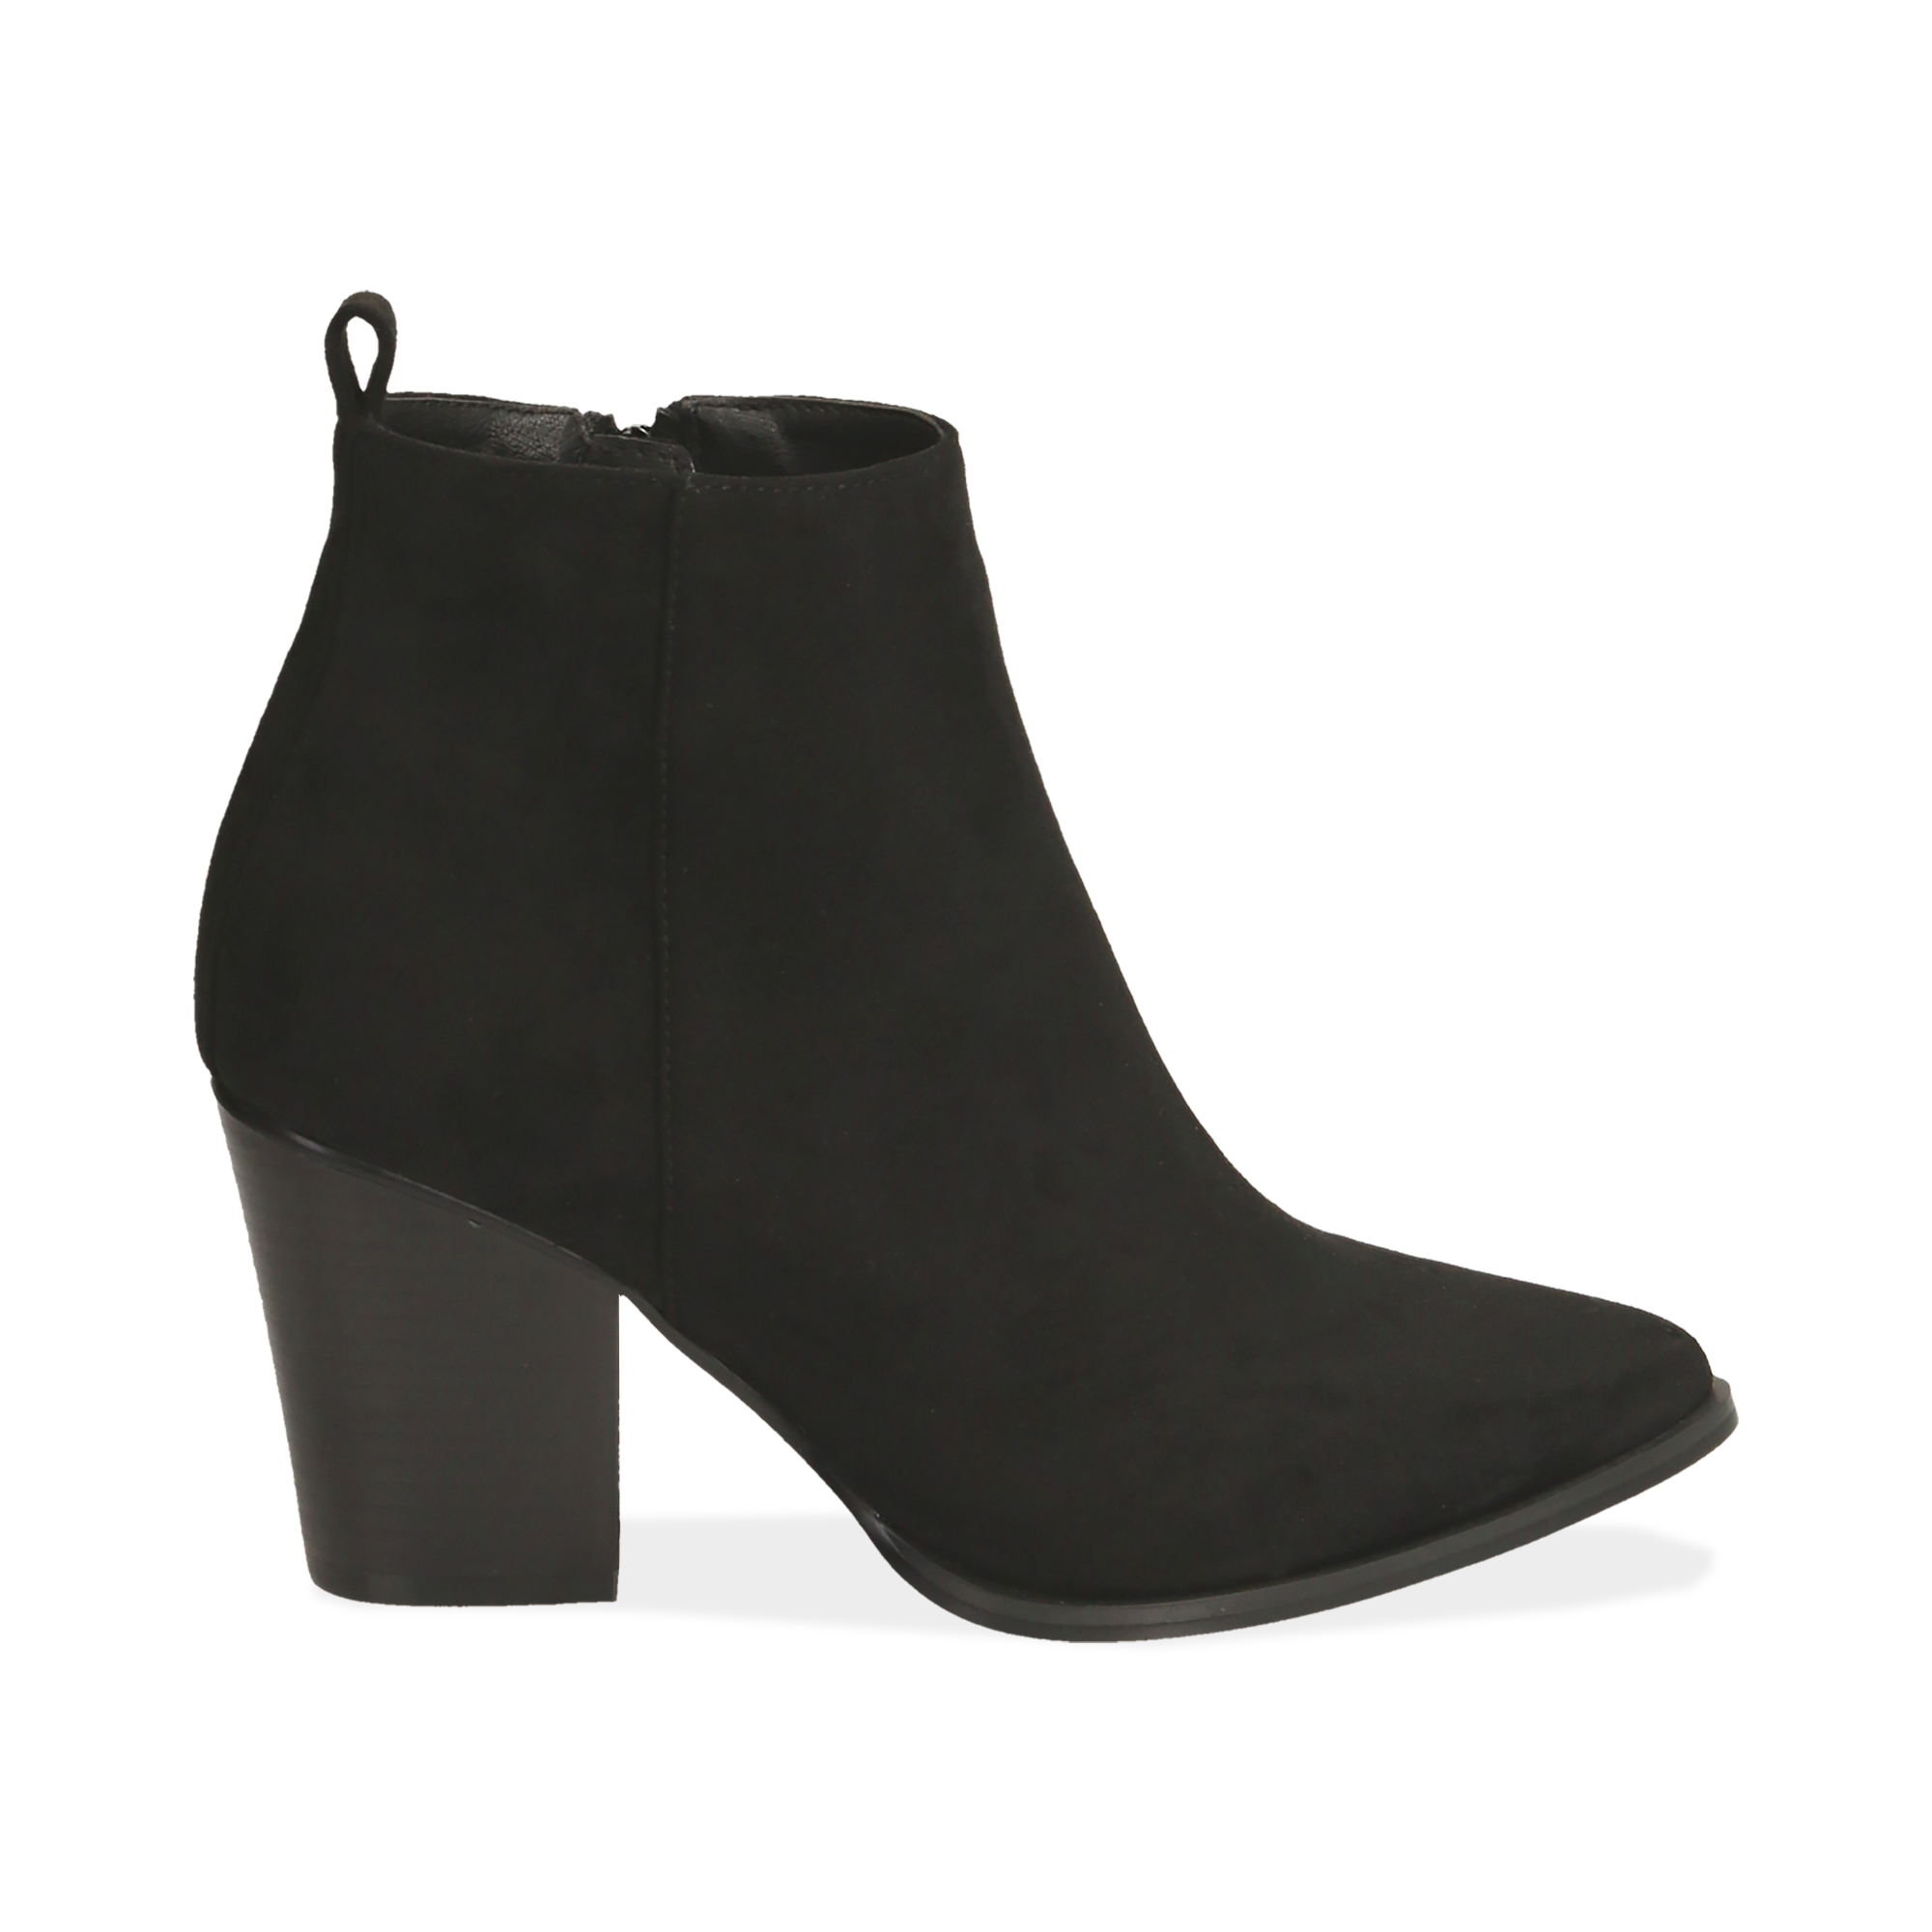 Ankle boots neri in microfibra, tacco 8,50 cm